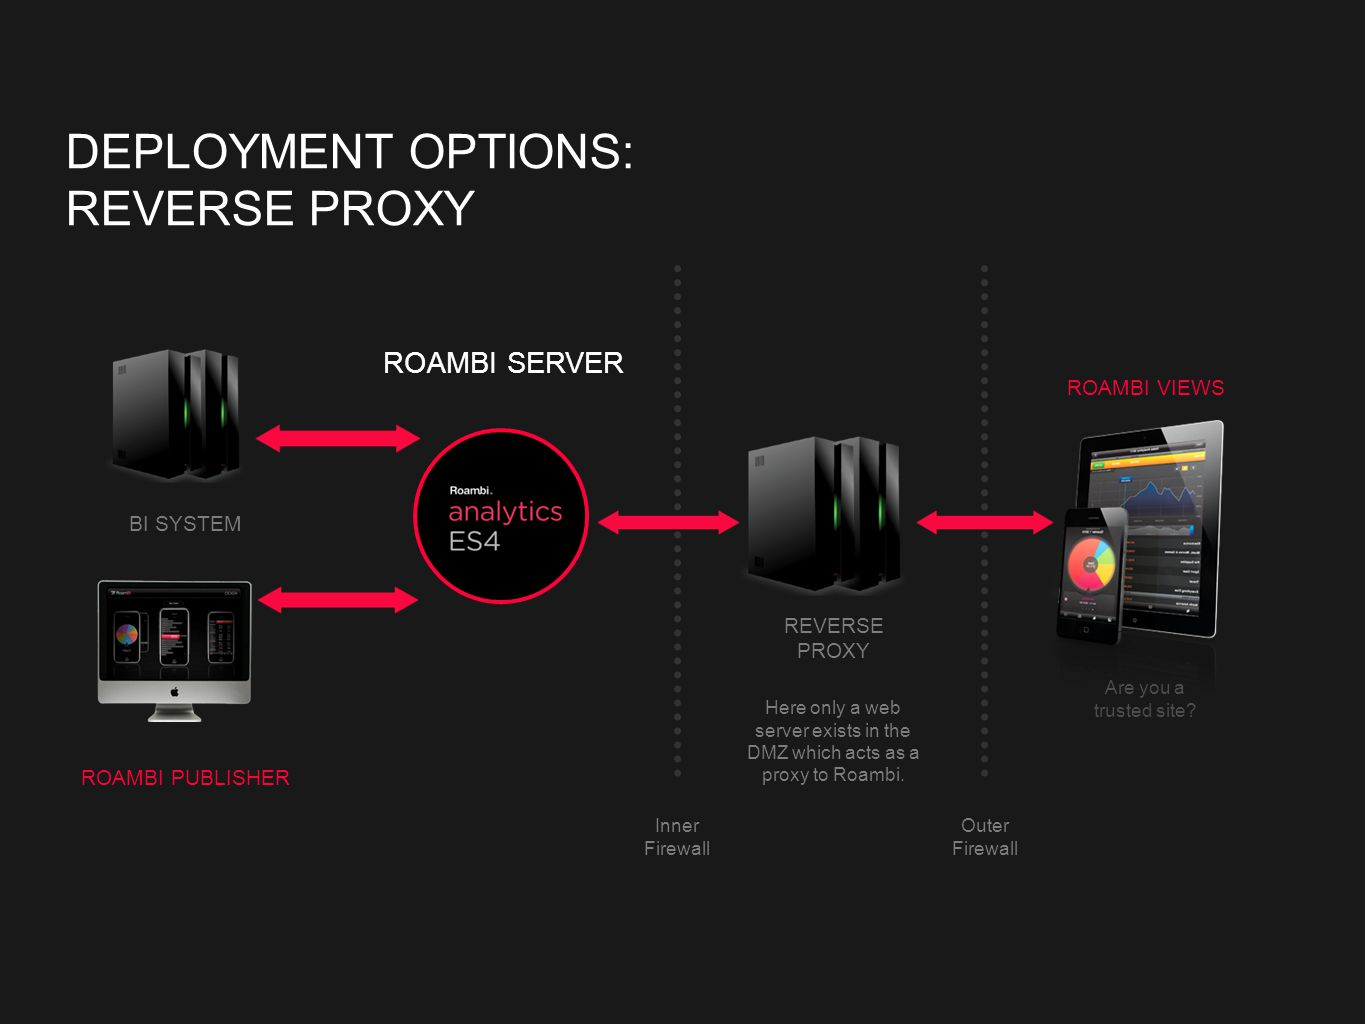 DEPLOYMENT OPTIONS: REVERSE PROXY Here only a web server exists in the DMZ which acts as a proxy to Roambi.